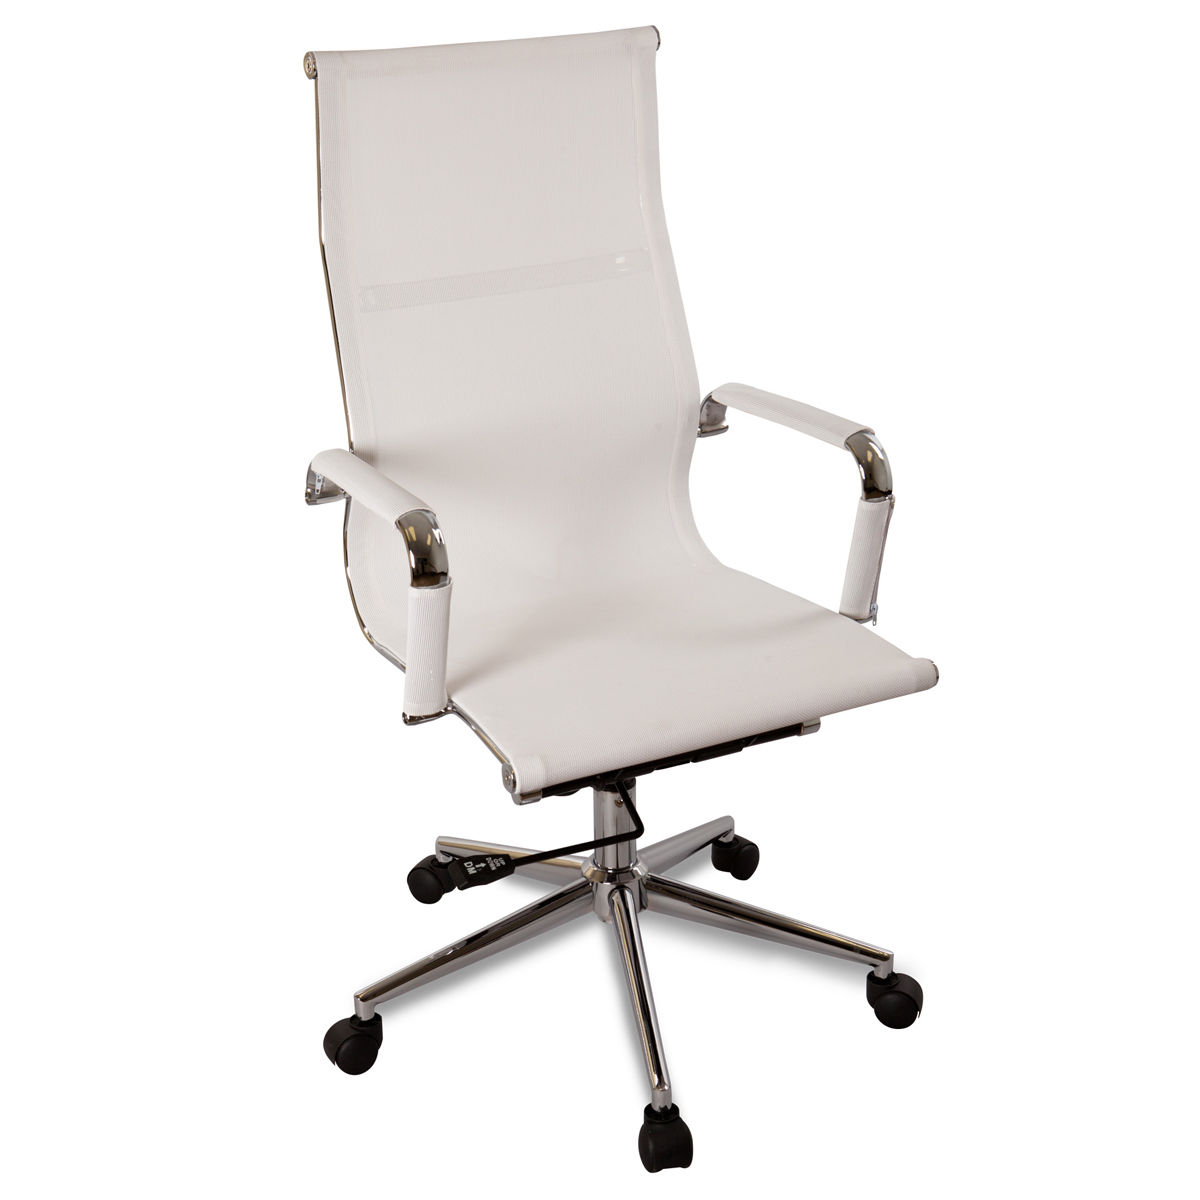 Details About New White Modern Ergonomic Mesh High Back Executive Computer Desk Office Chair